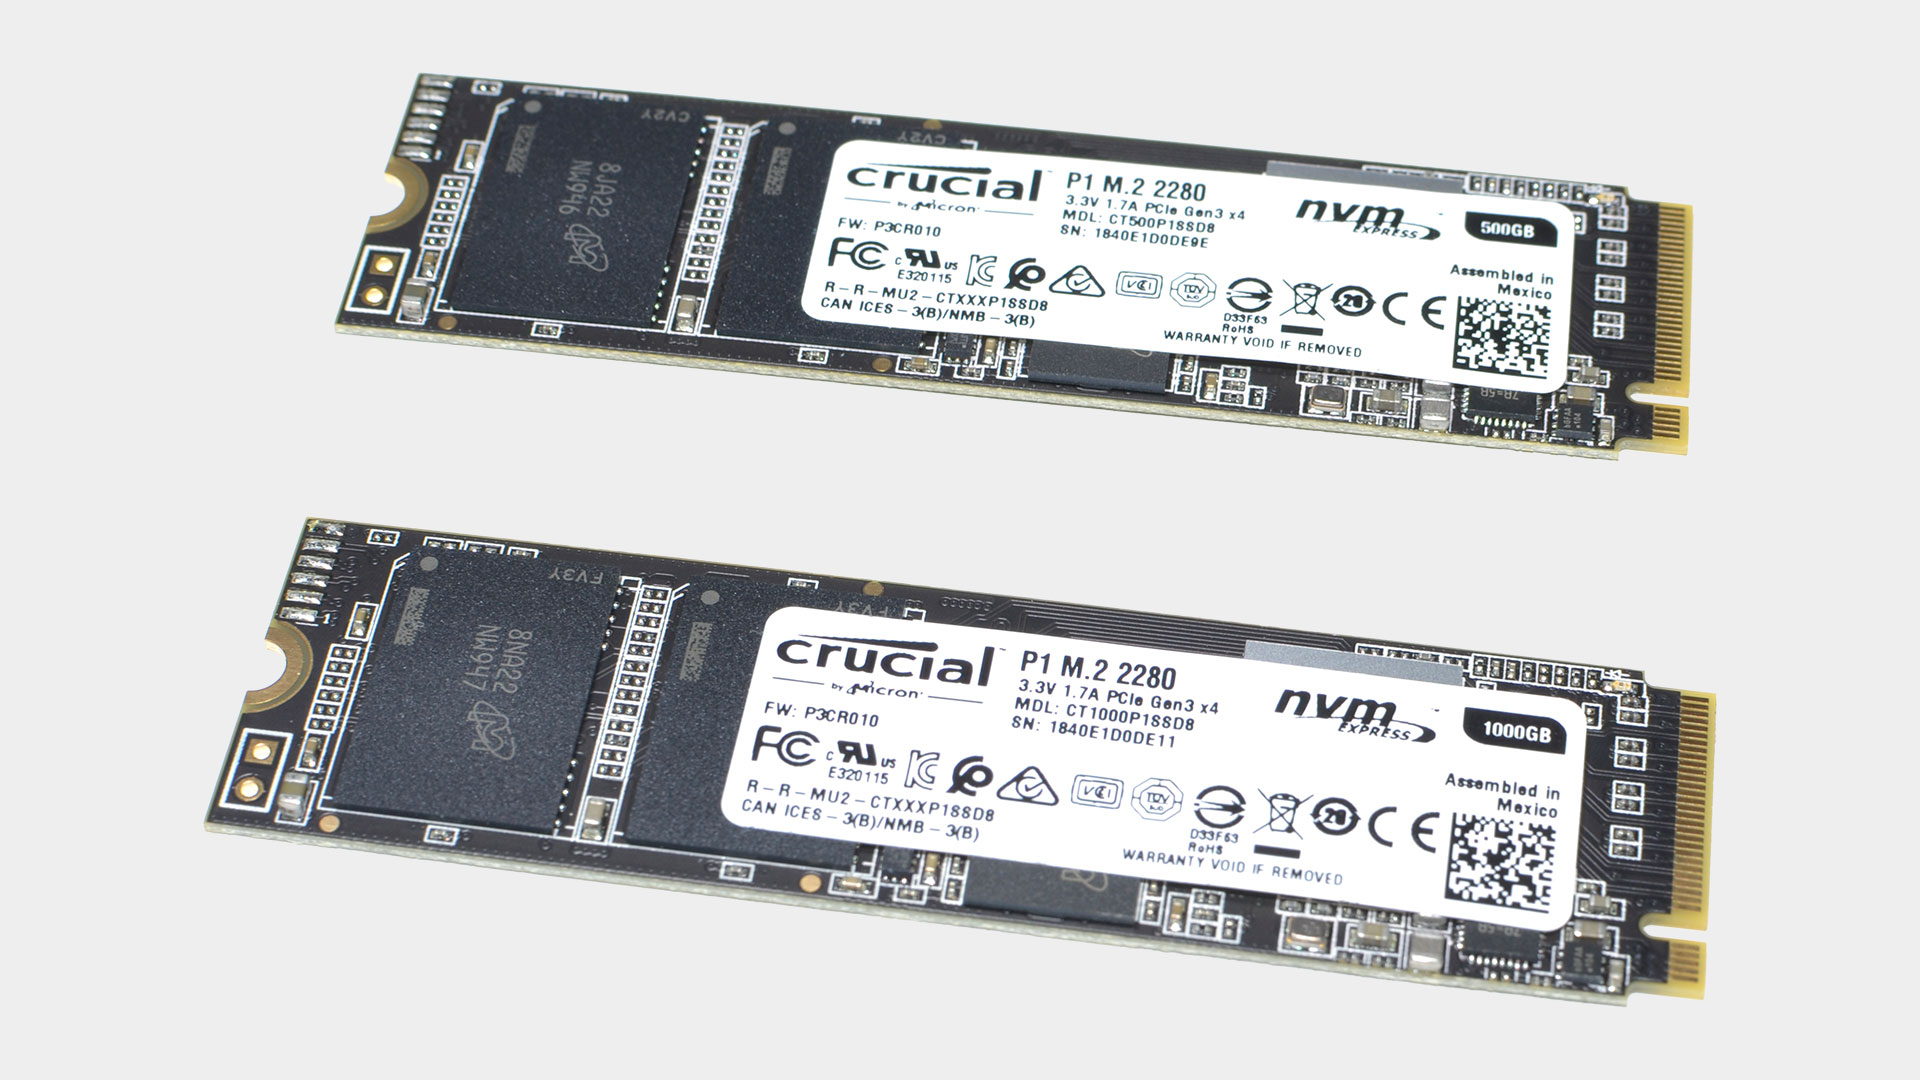 Crucial P1 500GB and 1TB SSDs